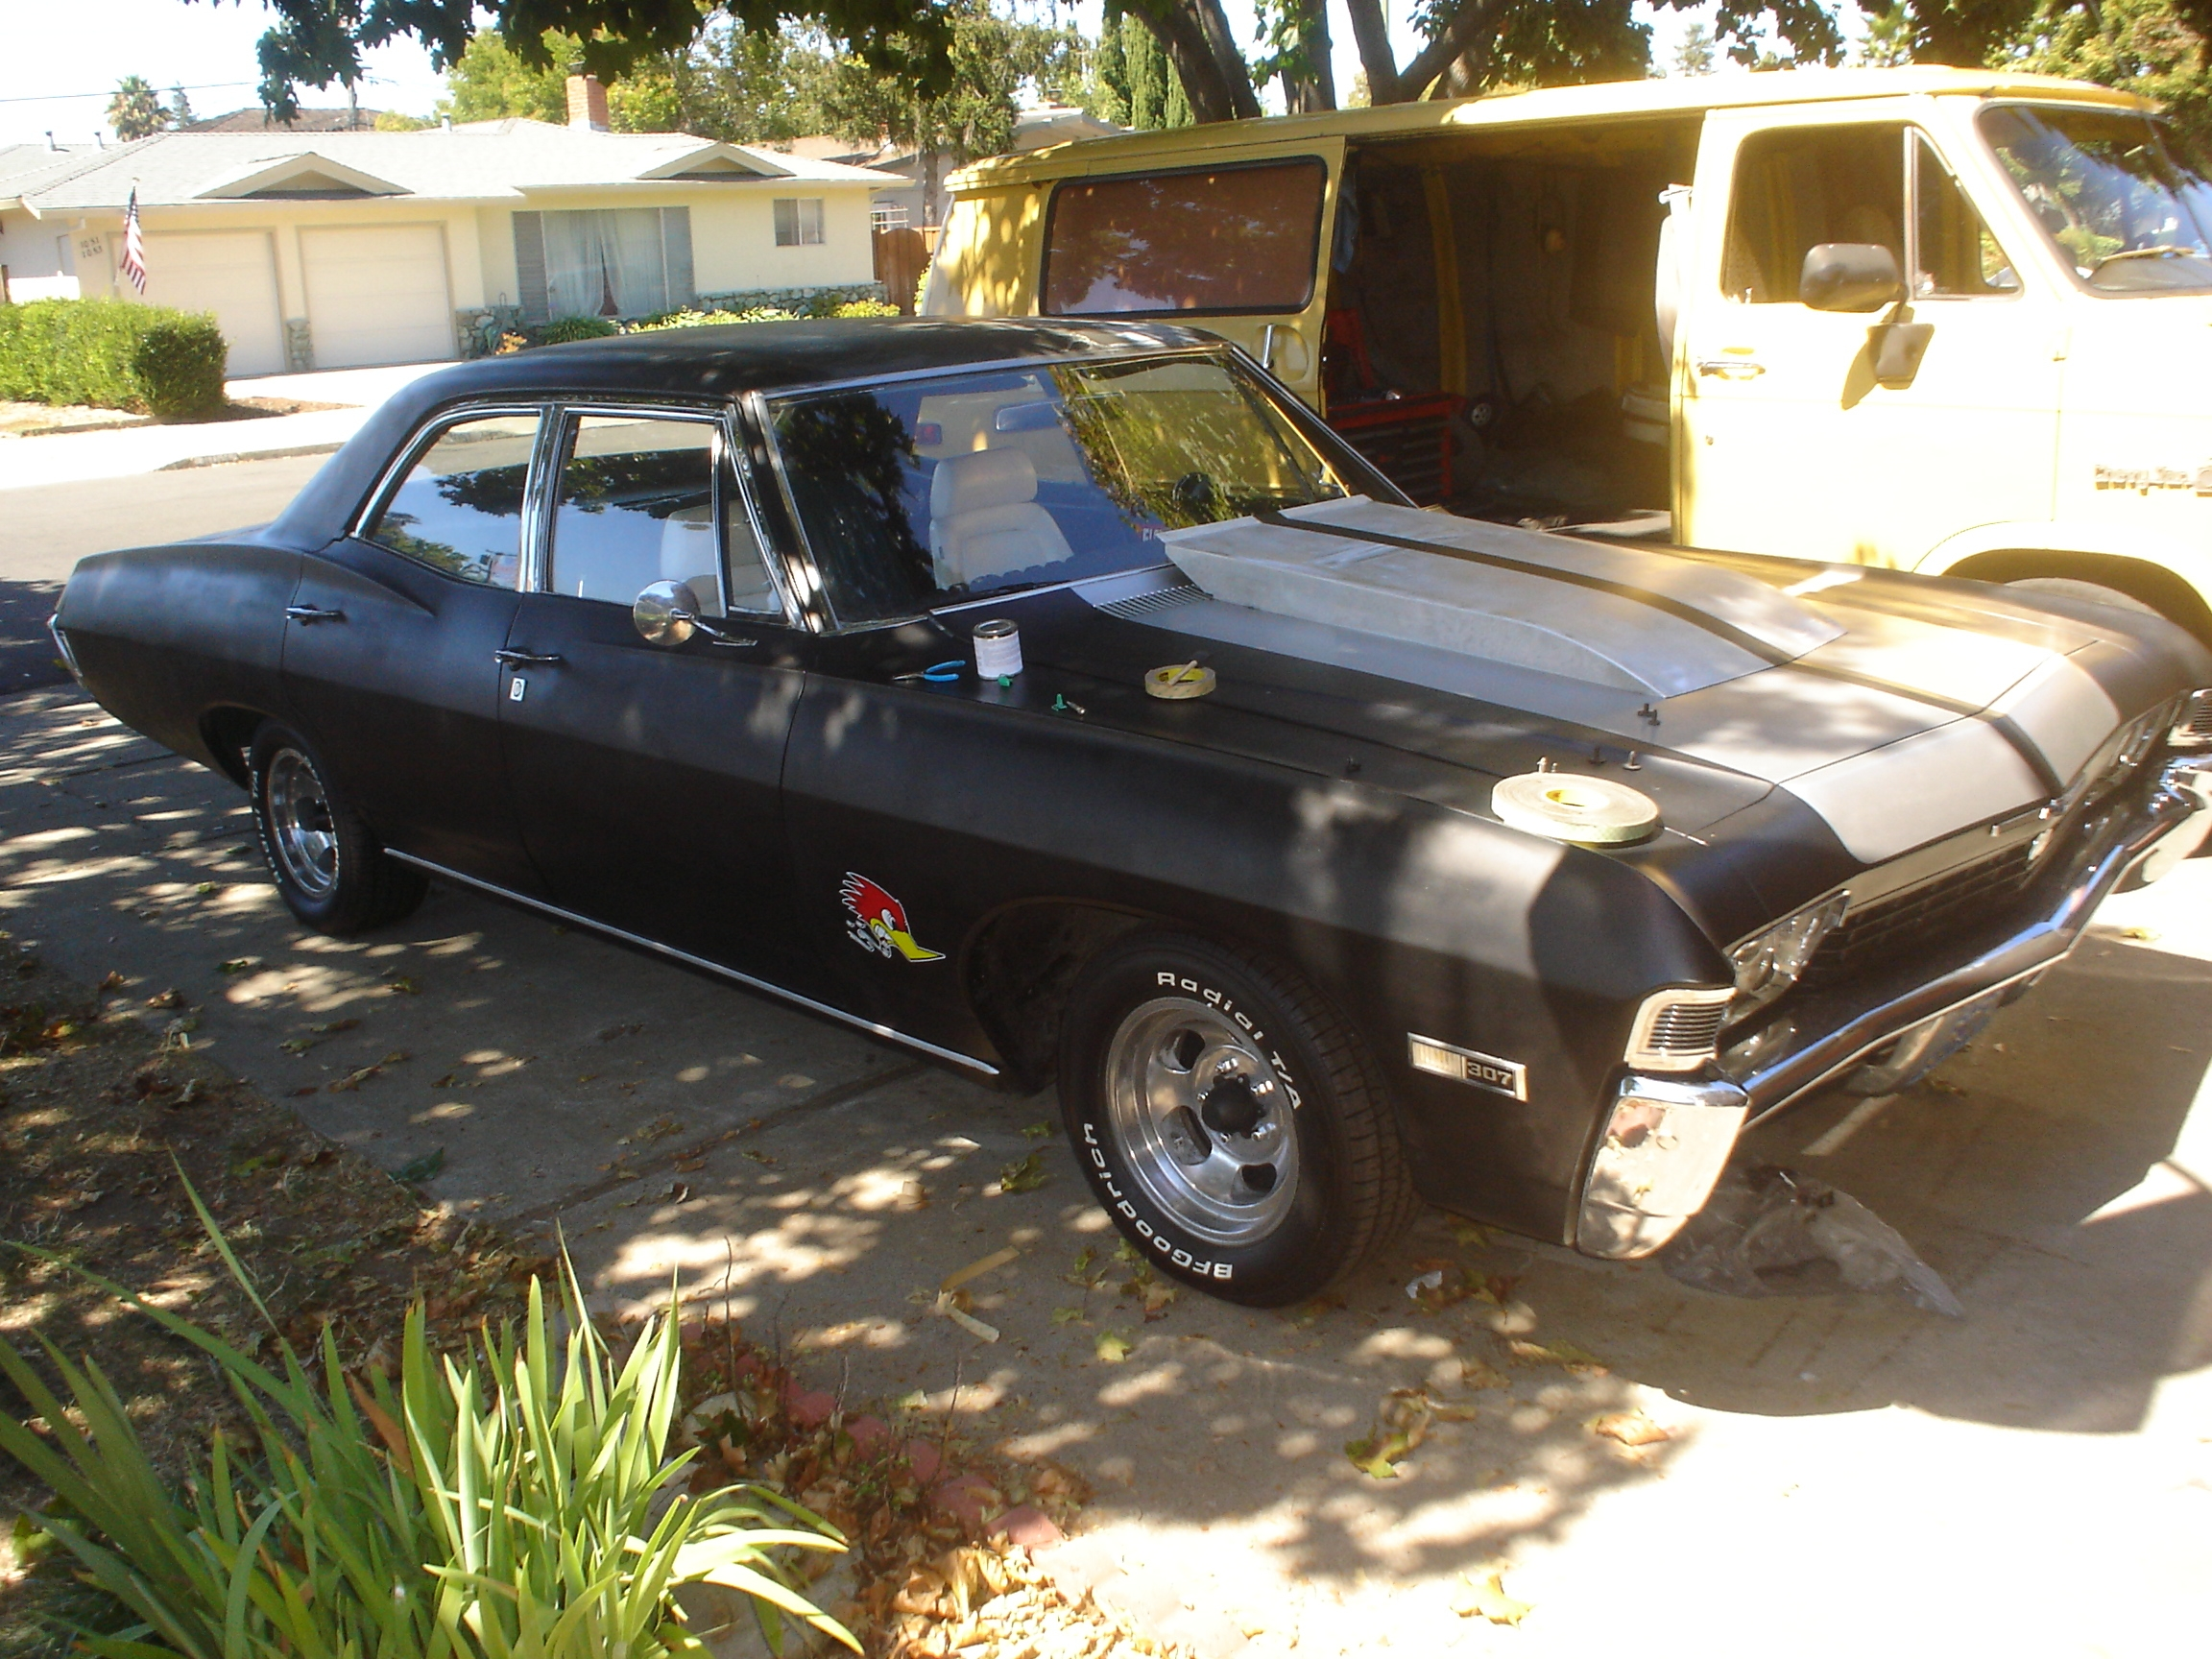 68_biscayne 1968 Chevrolet Biscayne Specs, Photos, Modification Info